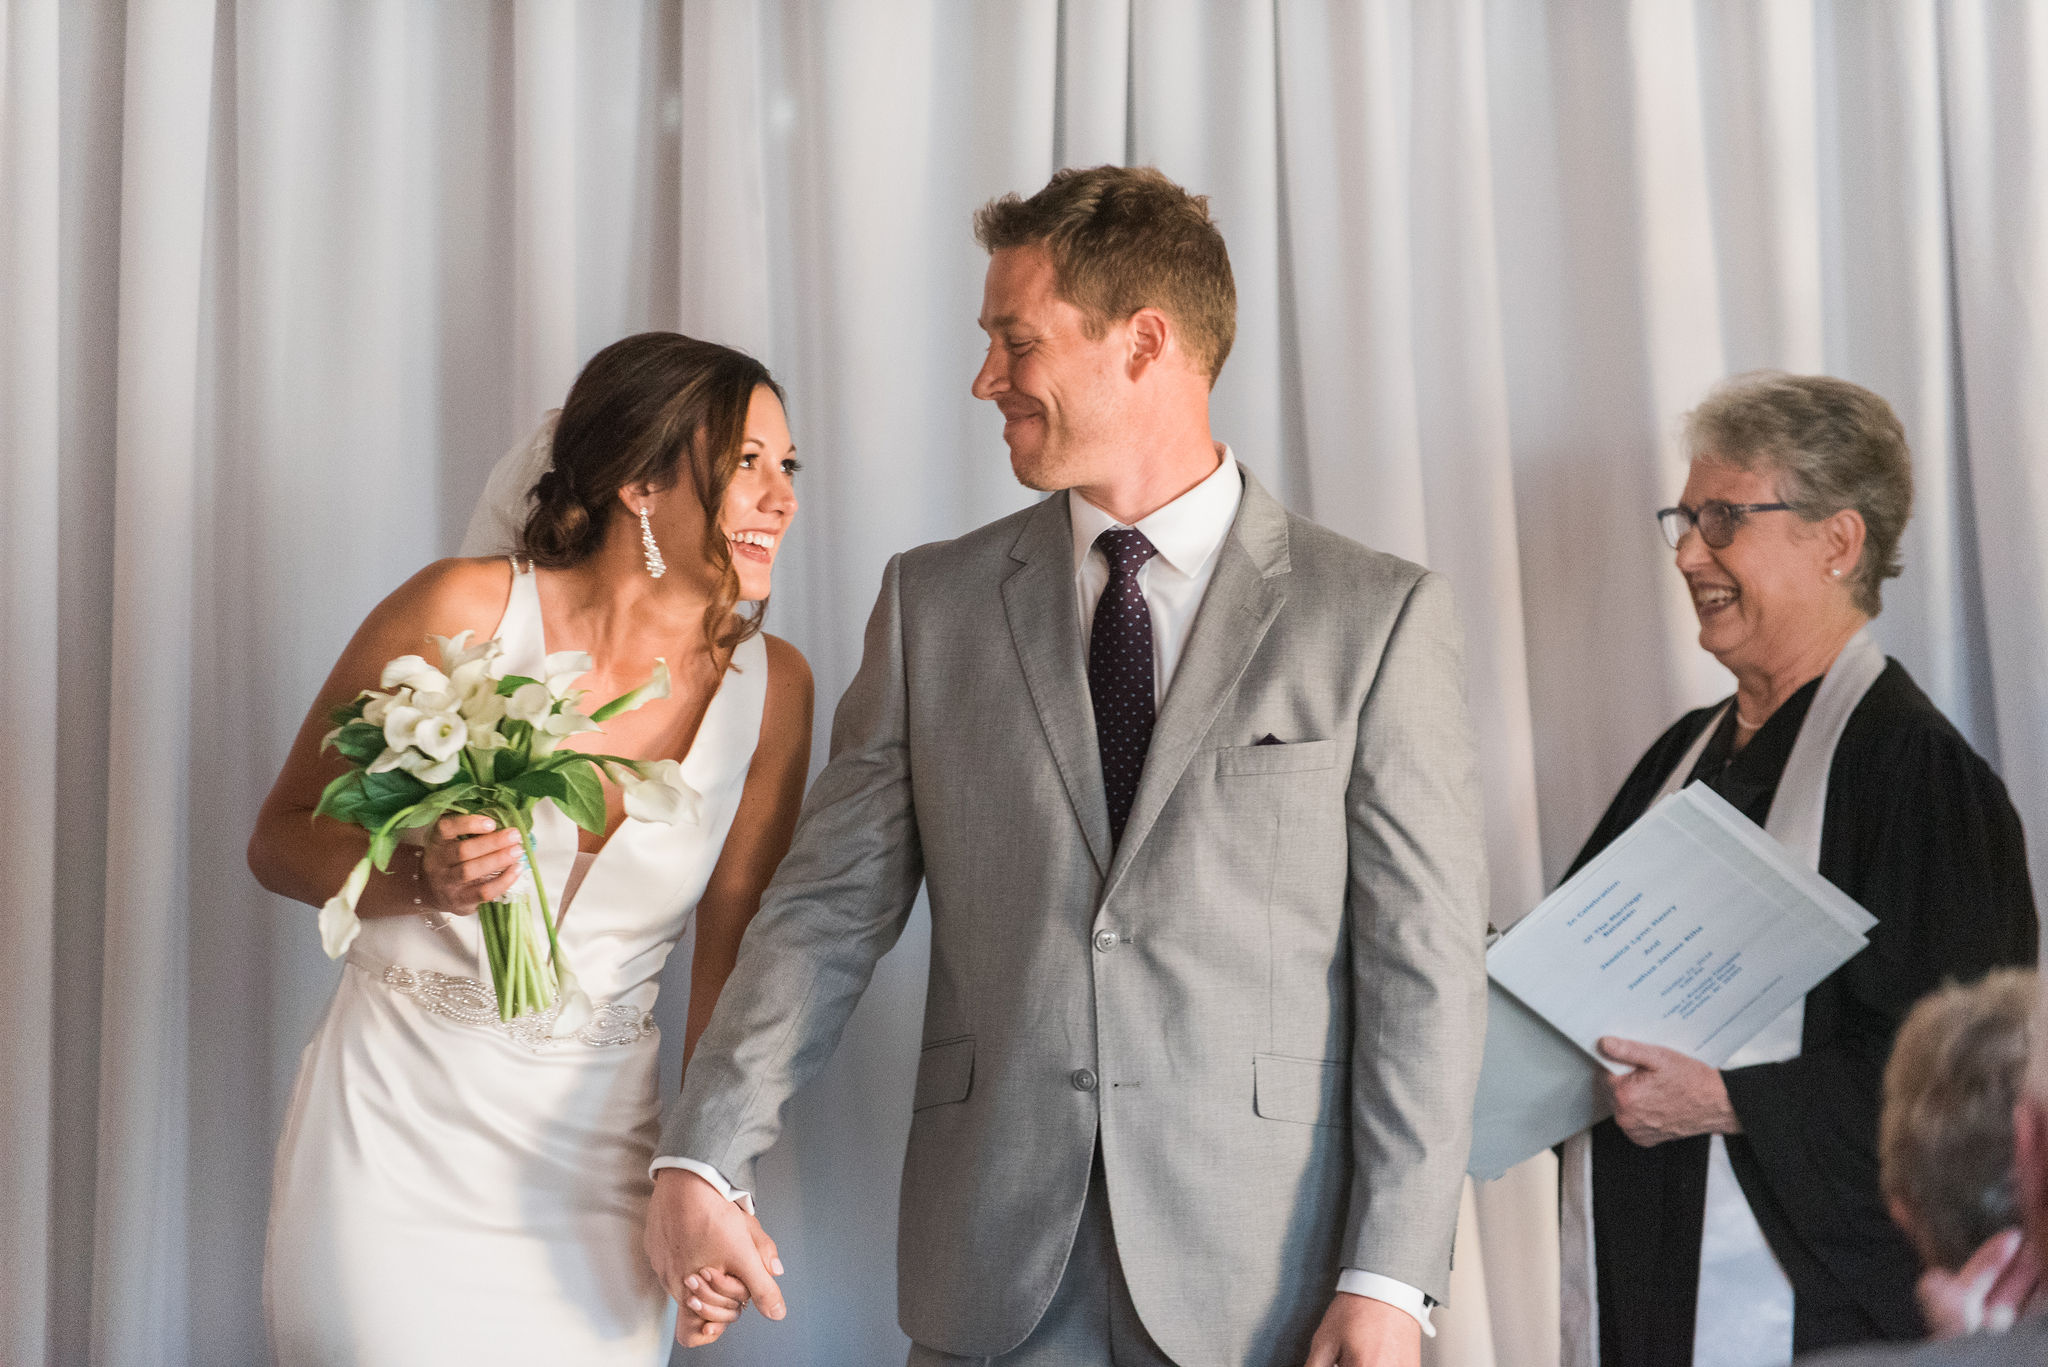 Bride and groom exchange a smile after being married during a fall weeding ceremony captured by Sunshower Photography